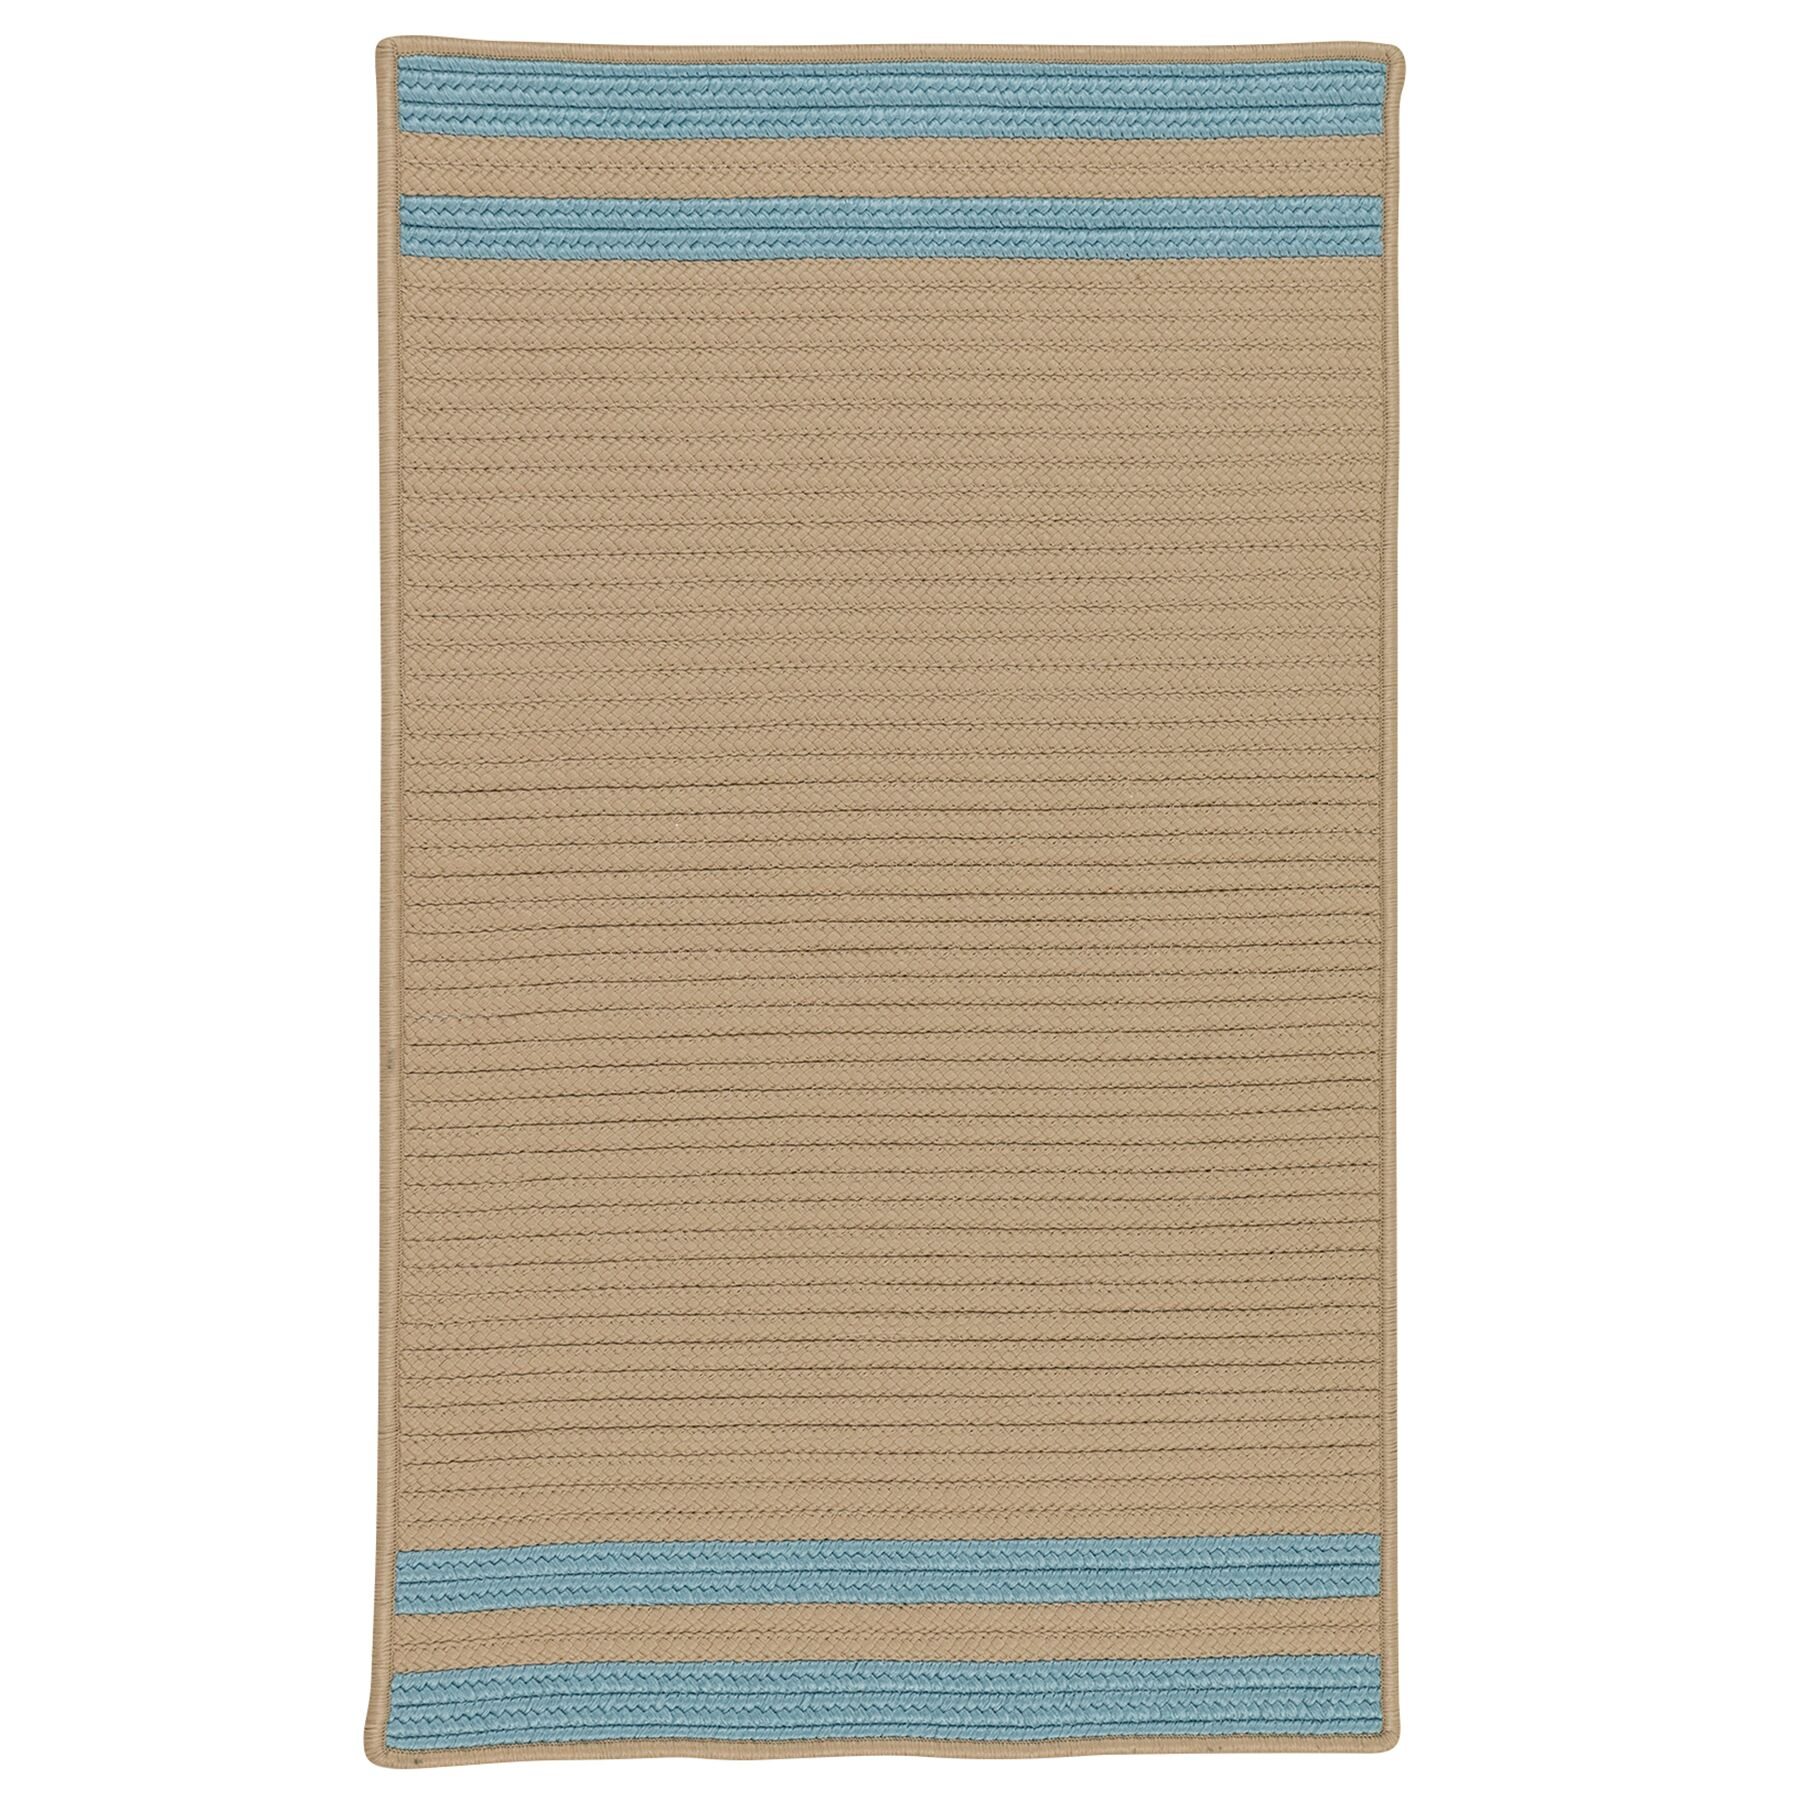 Kellie Stripe Hand-Braided Federal Blue/Brown Indoor/Outdoor Area Rug Rug Size: Rectangle 2' x 4'